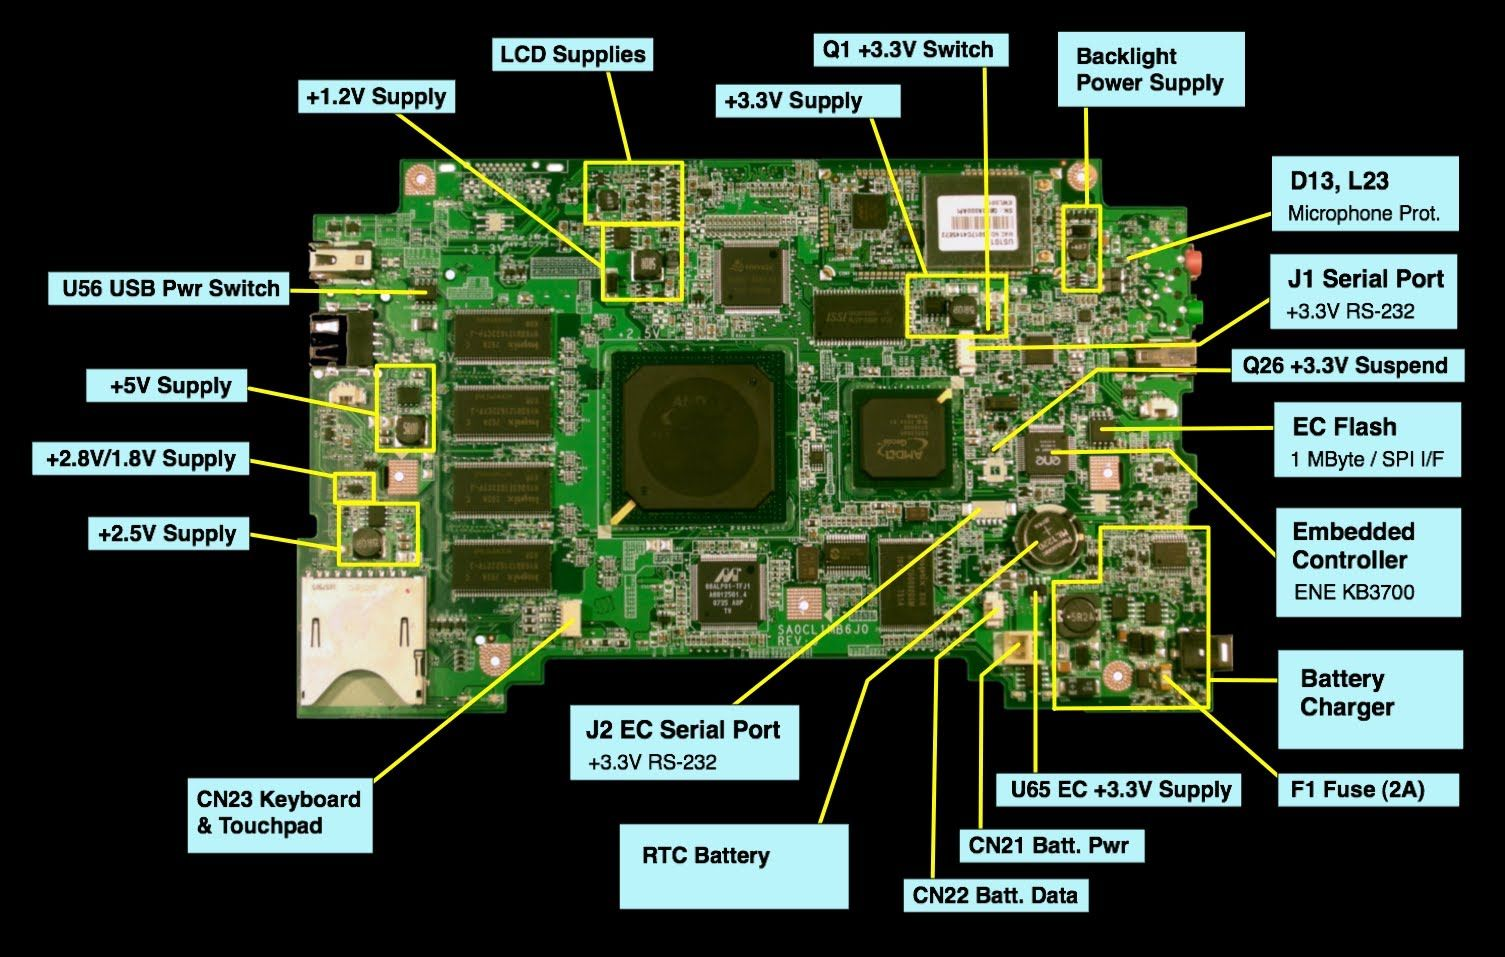 medium resolution of diagram showing the inside components of a laptop battery stockdiagram showing the internal parts of computer